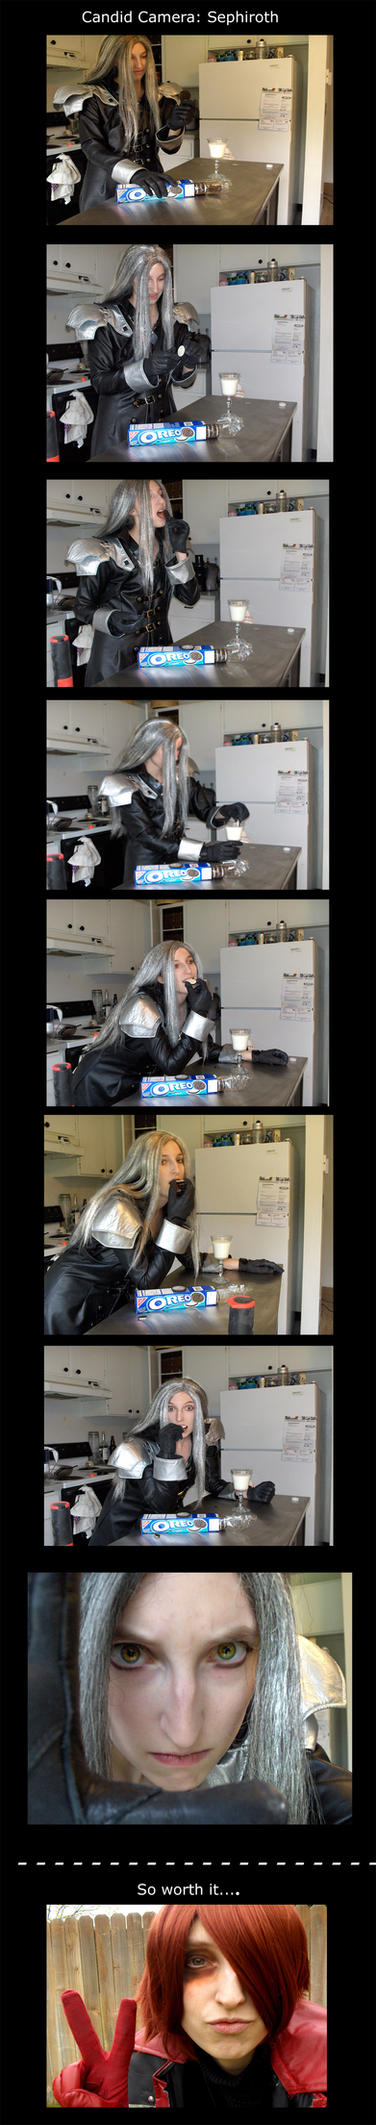 Candid Camera: Sephiroth by The-Winter-Cosplayer